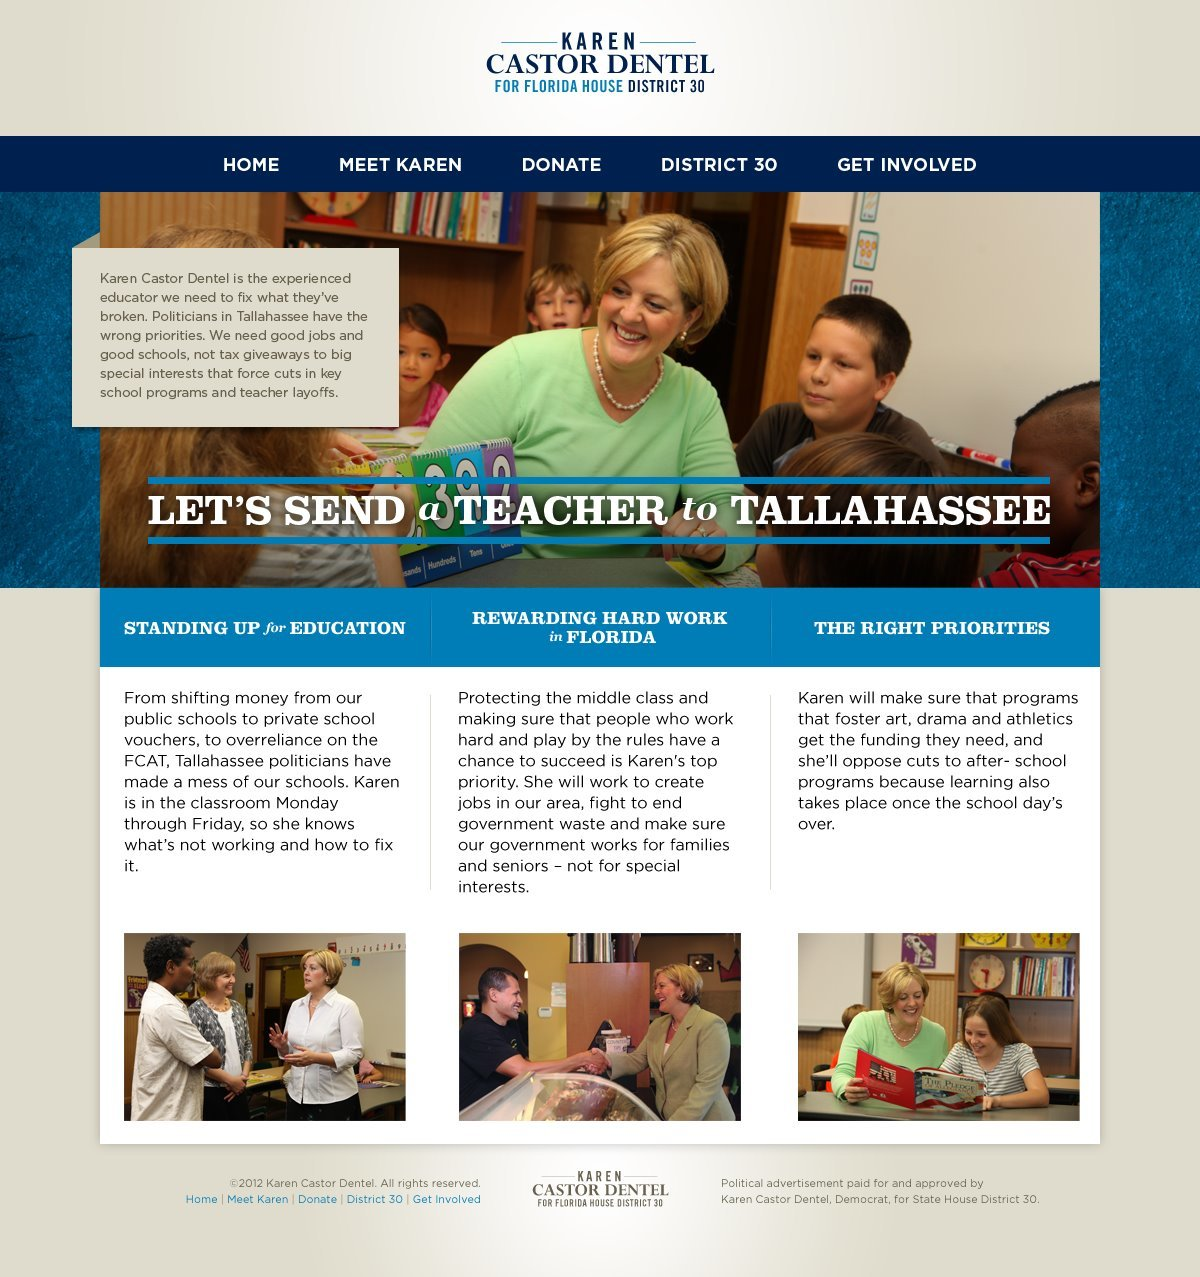 Karen Castor-Dentel Web Design